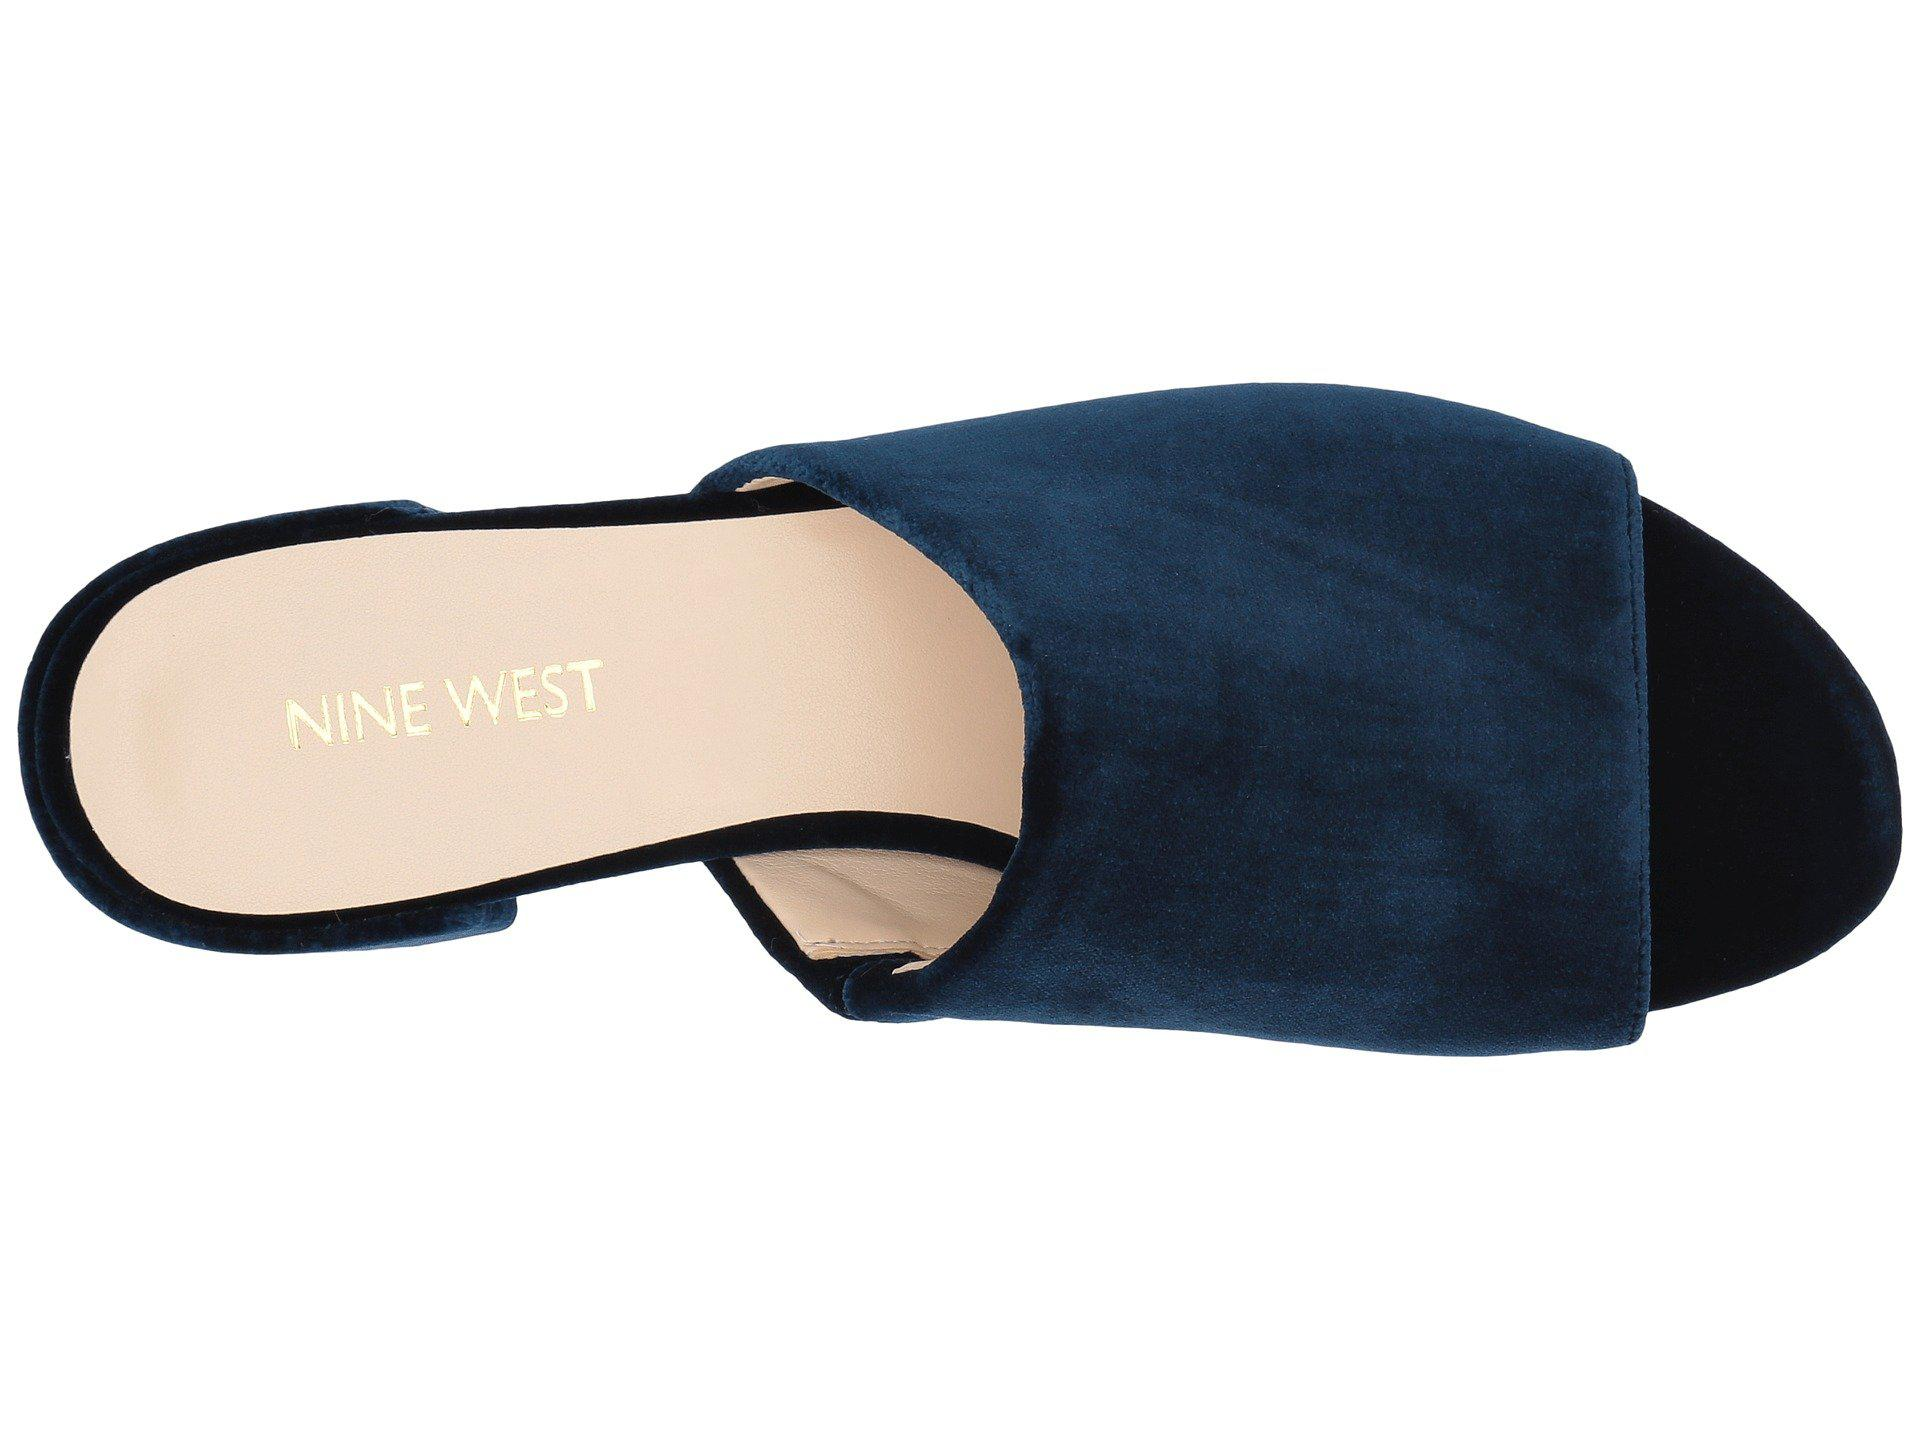 ad77c19c840b Nine West - Blue Raissa Slide Sandal - Lyst. View fullscreen